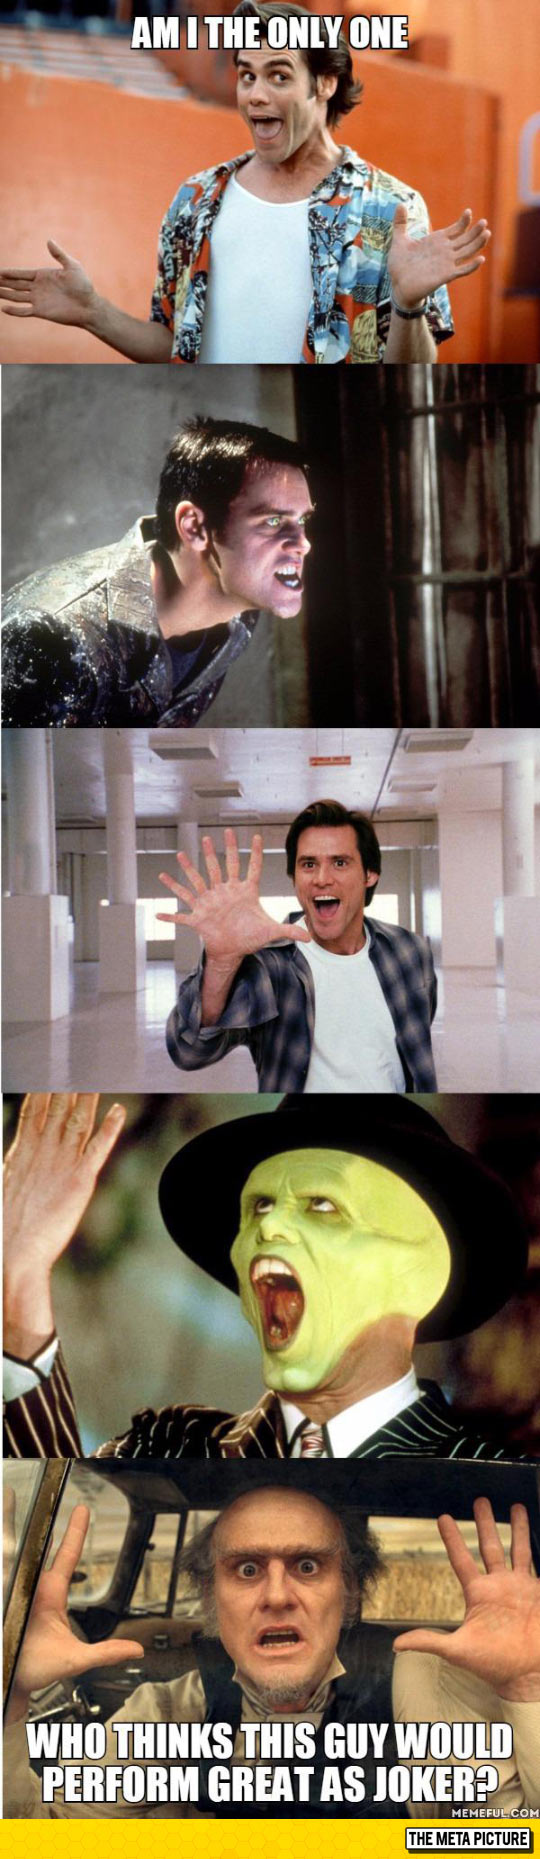 funny-Jim-Carrey-madness-actor